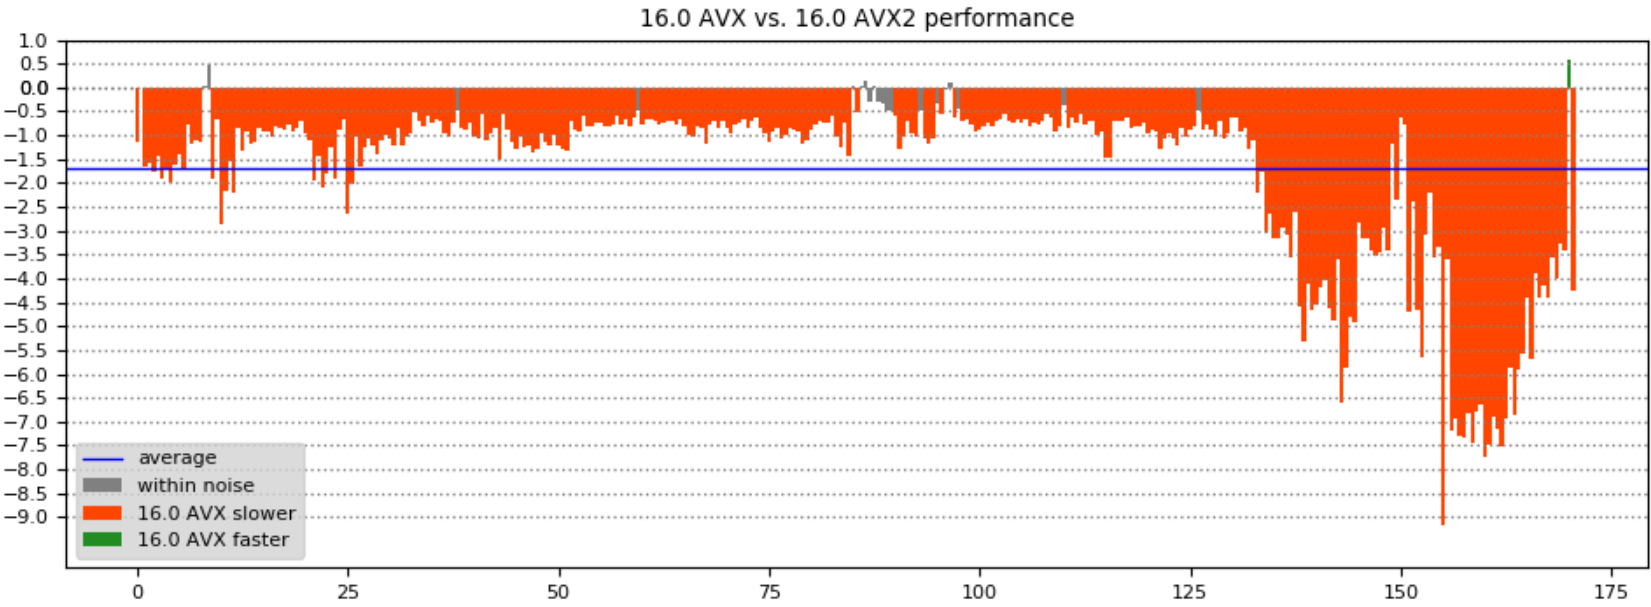 Image showing the improvement between 16.0 AVX2 and 16.0 AVX